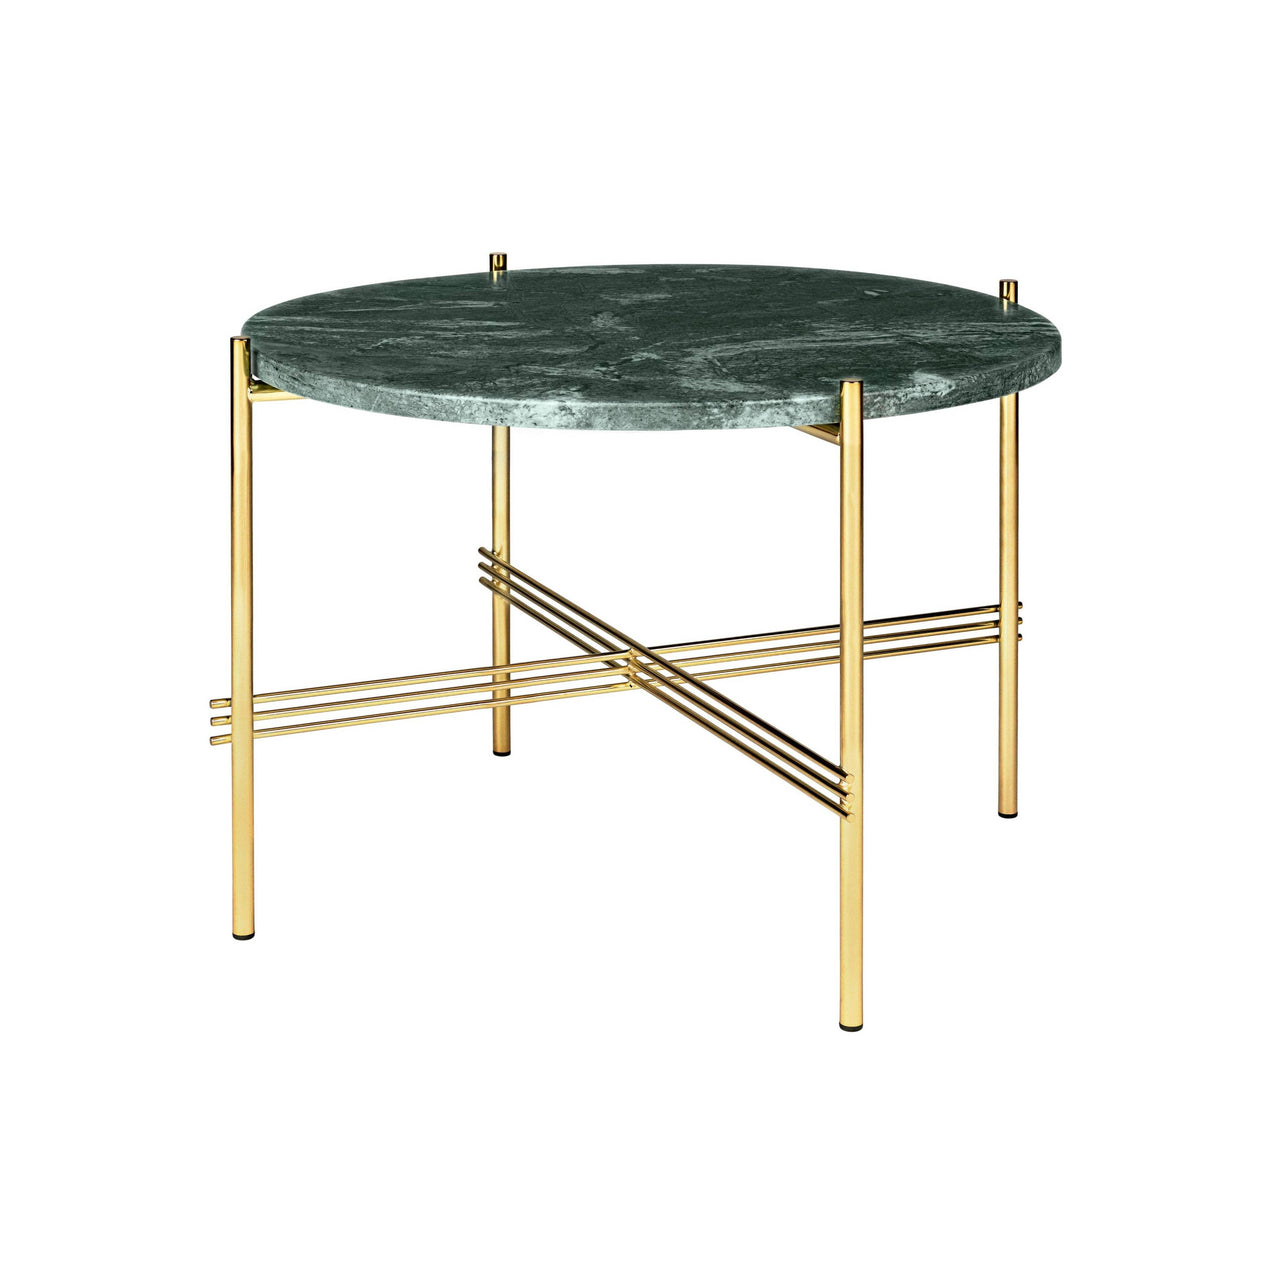 TS Round Coffee Table: Small + Brass Base + Green Gautemala Marble